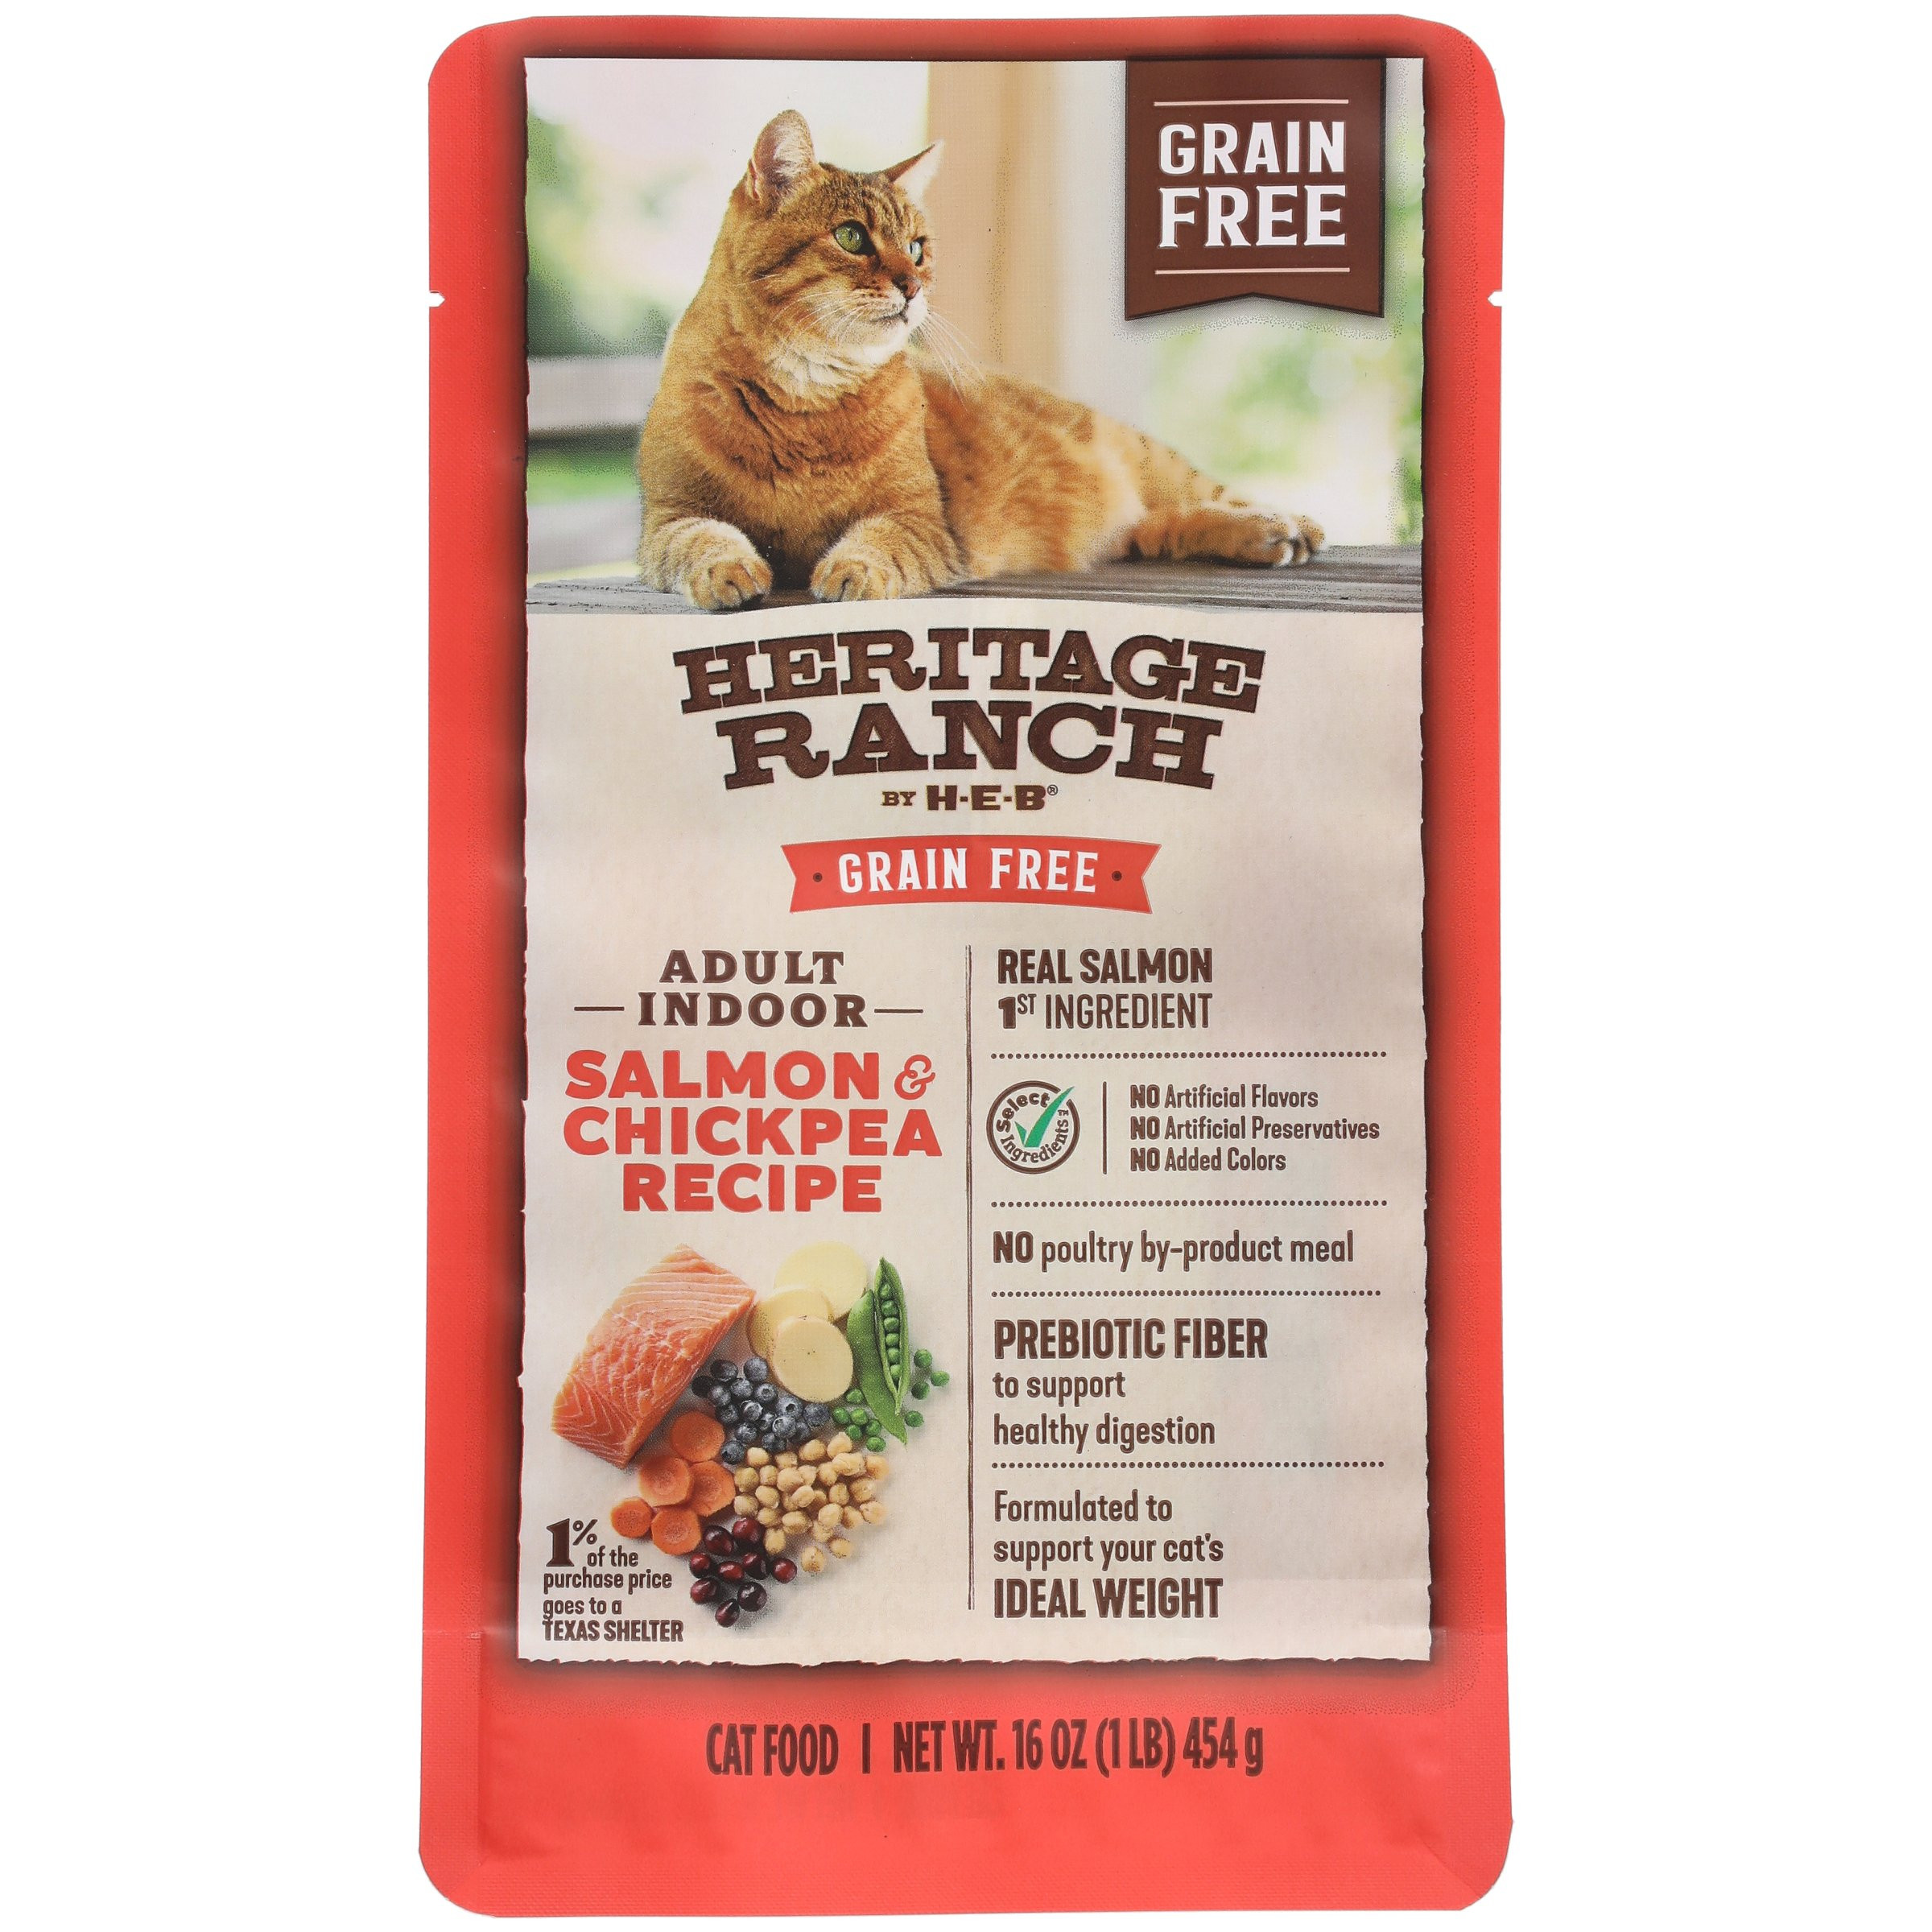 Heb heritage ranch salmon chick pea grain free dry cat food heb heritage ranch salmon chick pea grain free dry cat food shop dry at heb forumfinder Gallery